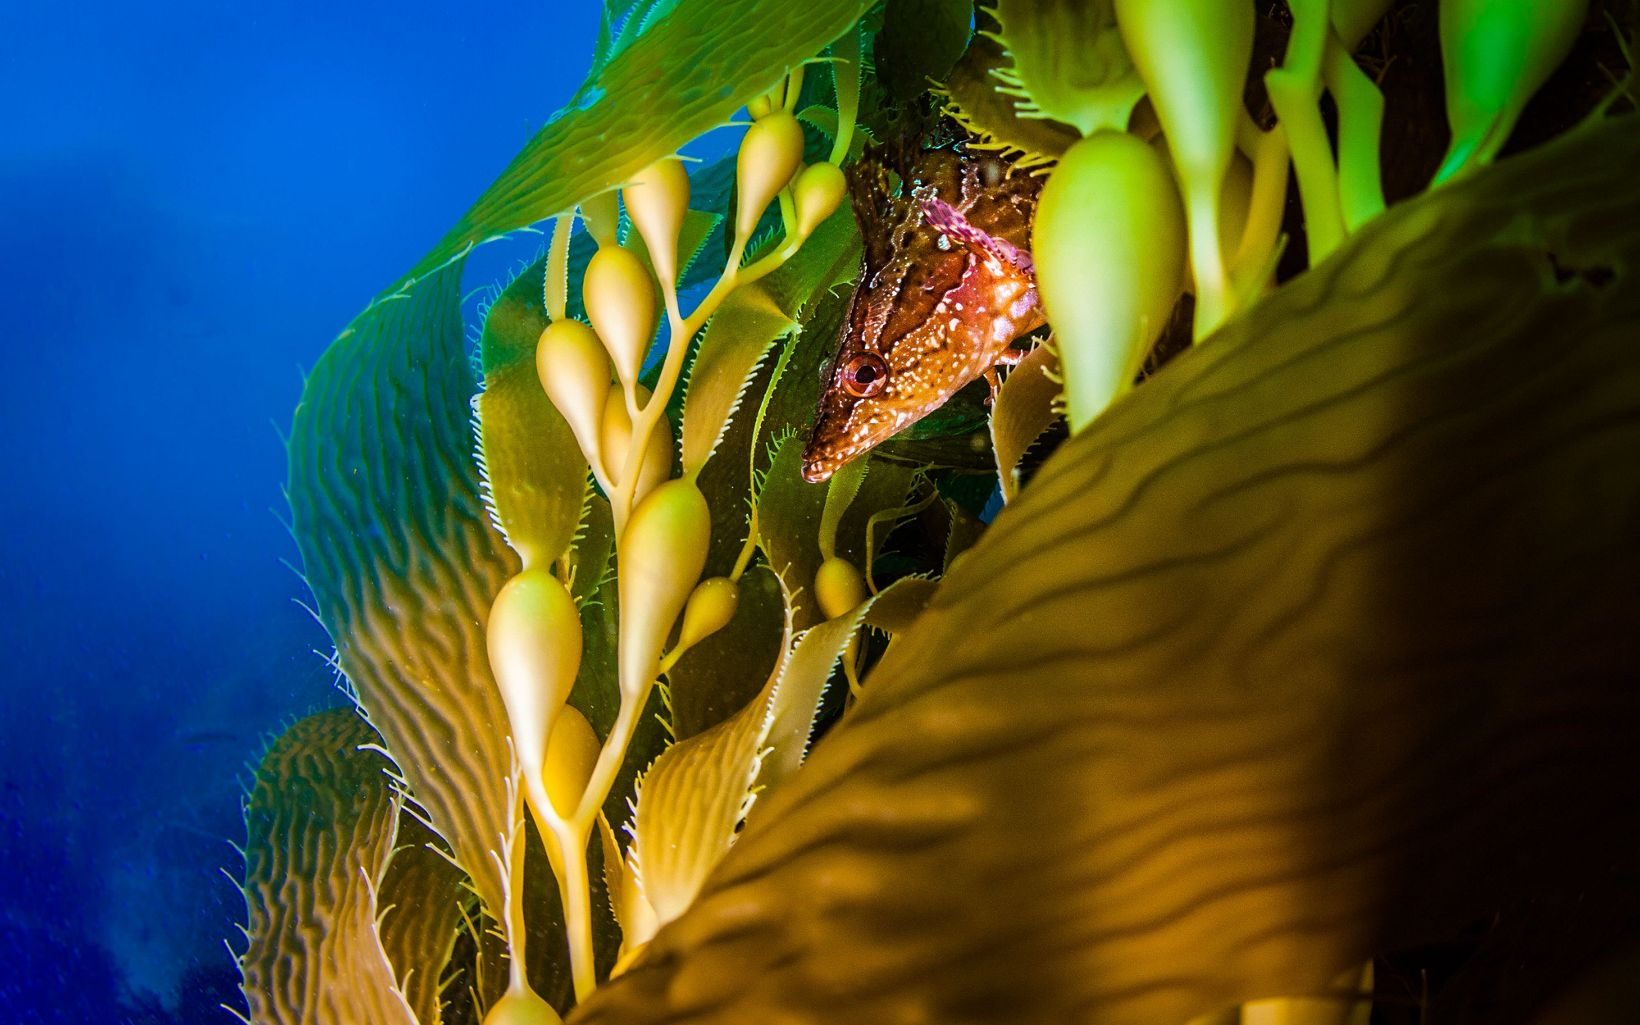 Closeup of a fish peeking out from between kelp fronds.